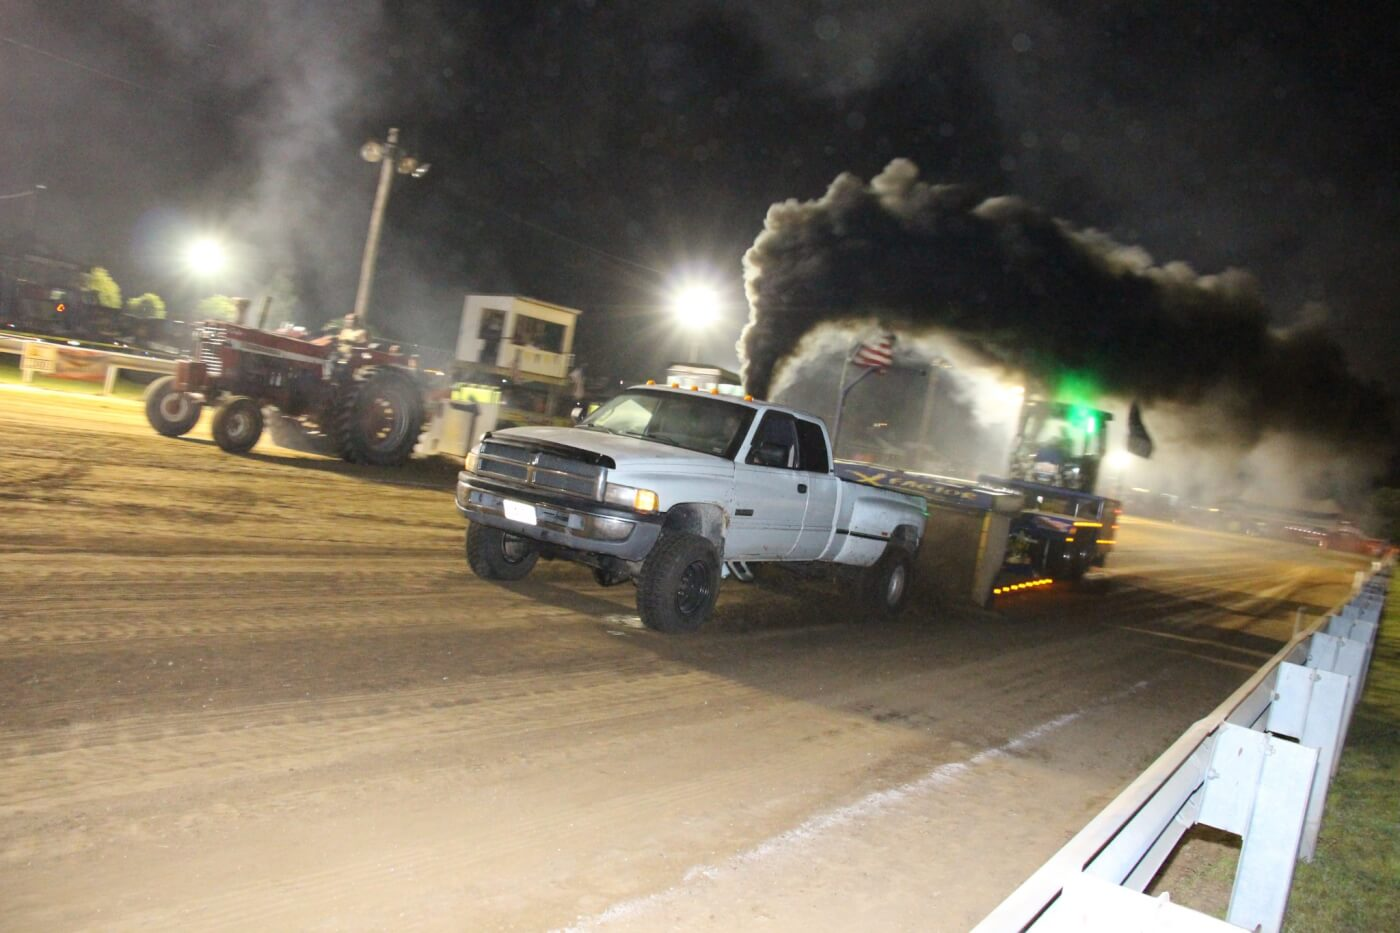 Another strong running 12-valve candidate in the Work Stock Class was Morgan Primm's Dodge Ram 3500. This truck takes advantage of class rules, which allow Cummins powered vehicles to use a T4 flanged, S300-based turbocharger. Unfortunately, some clutch gremlins shut Morgan down a tad early in his run.